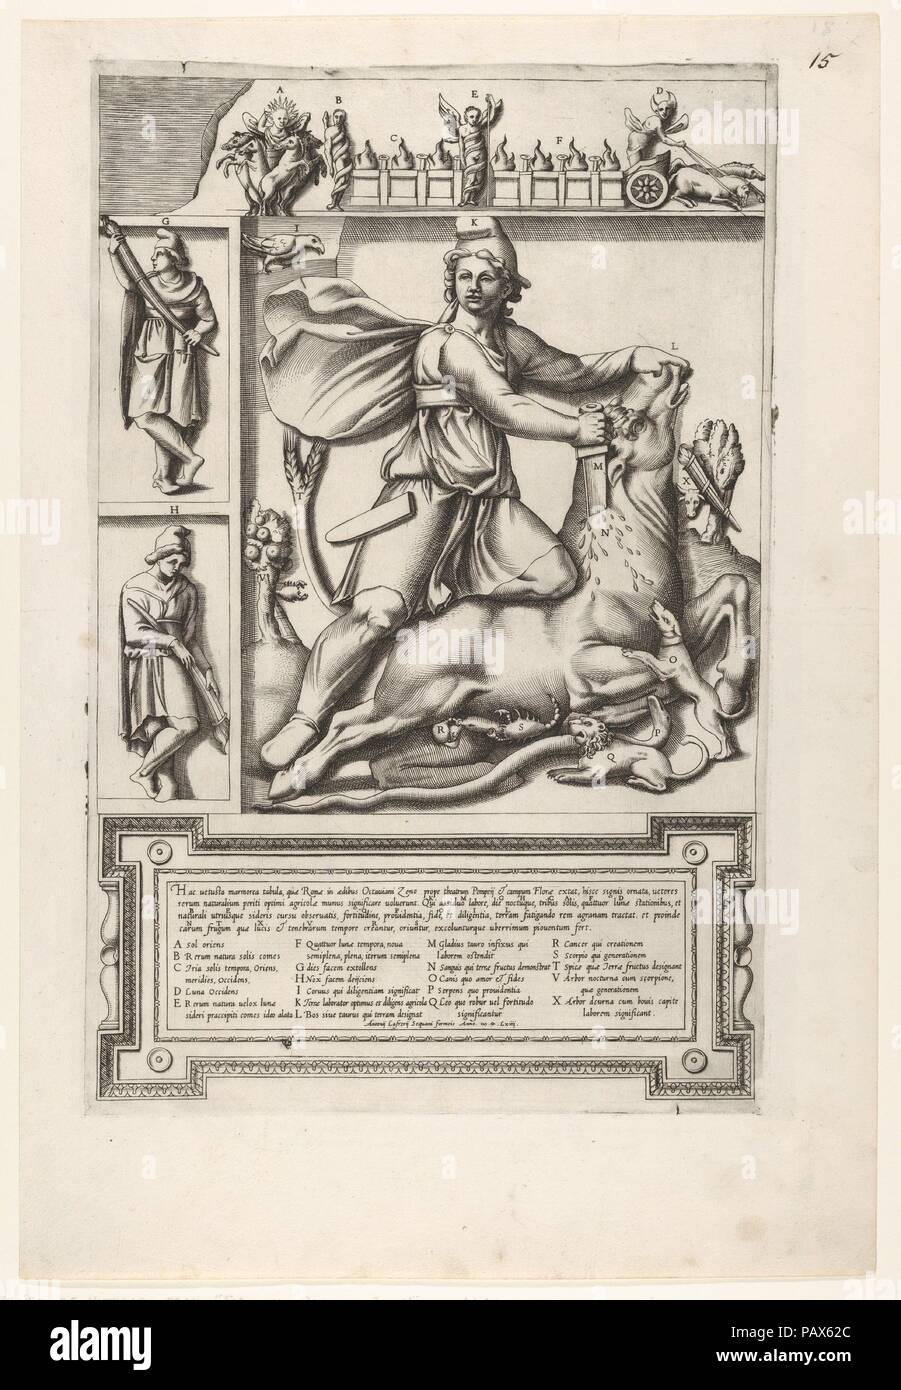 Relief with Mithras kneeling upon a bull and driving a sword into its shoulder, at left two smaller standing figures, one holding a sheathed sword and one holding a sword, a frieze with chariots and serpents coiled around figures above. Artist: Anonymous, Italian, 16th century. Dimensions: Plate: 15 15/16 x 10 3/8 in. (40.5 x 26.3 cm)  Sheet: 19 5/16 x 13 1/16 in. (49 x 33.2 cm). Publisher: Antonio Lafreri (French, Orgelet, Franche-Comte ca. 1512-1577 Rome). Date: 1564. Museum: Metropolitan Museum of Art, New York, USA. - Stock Image